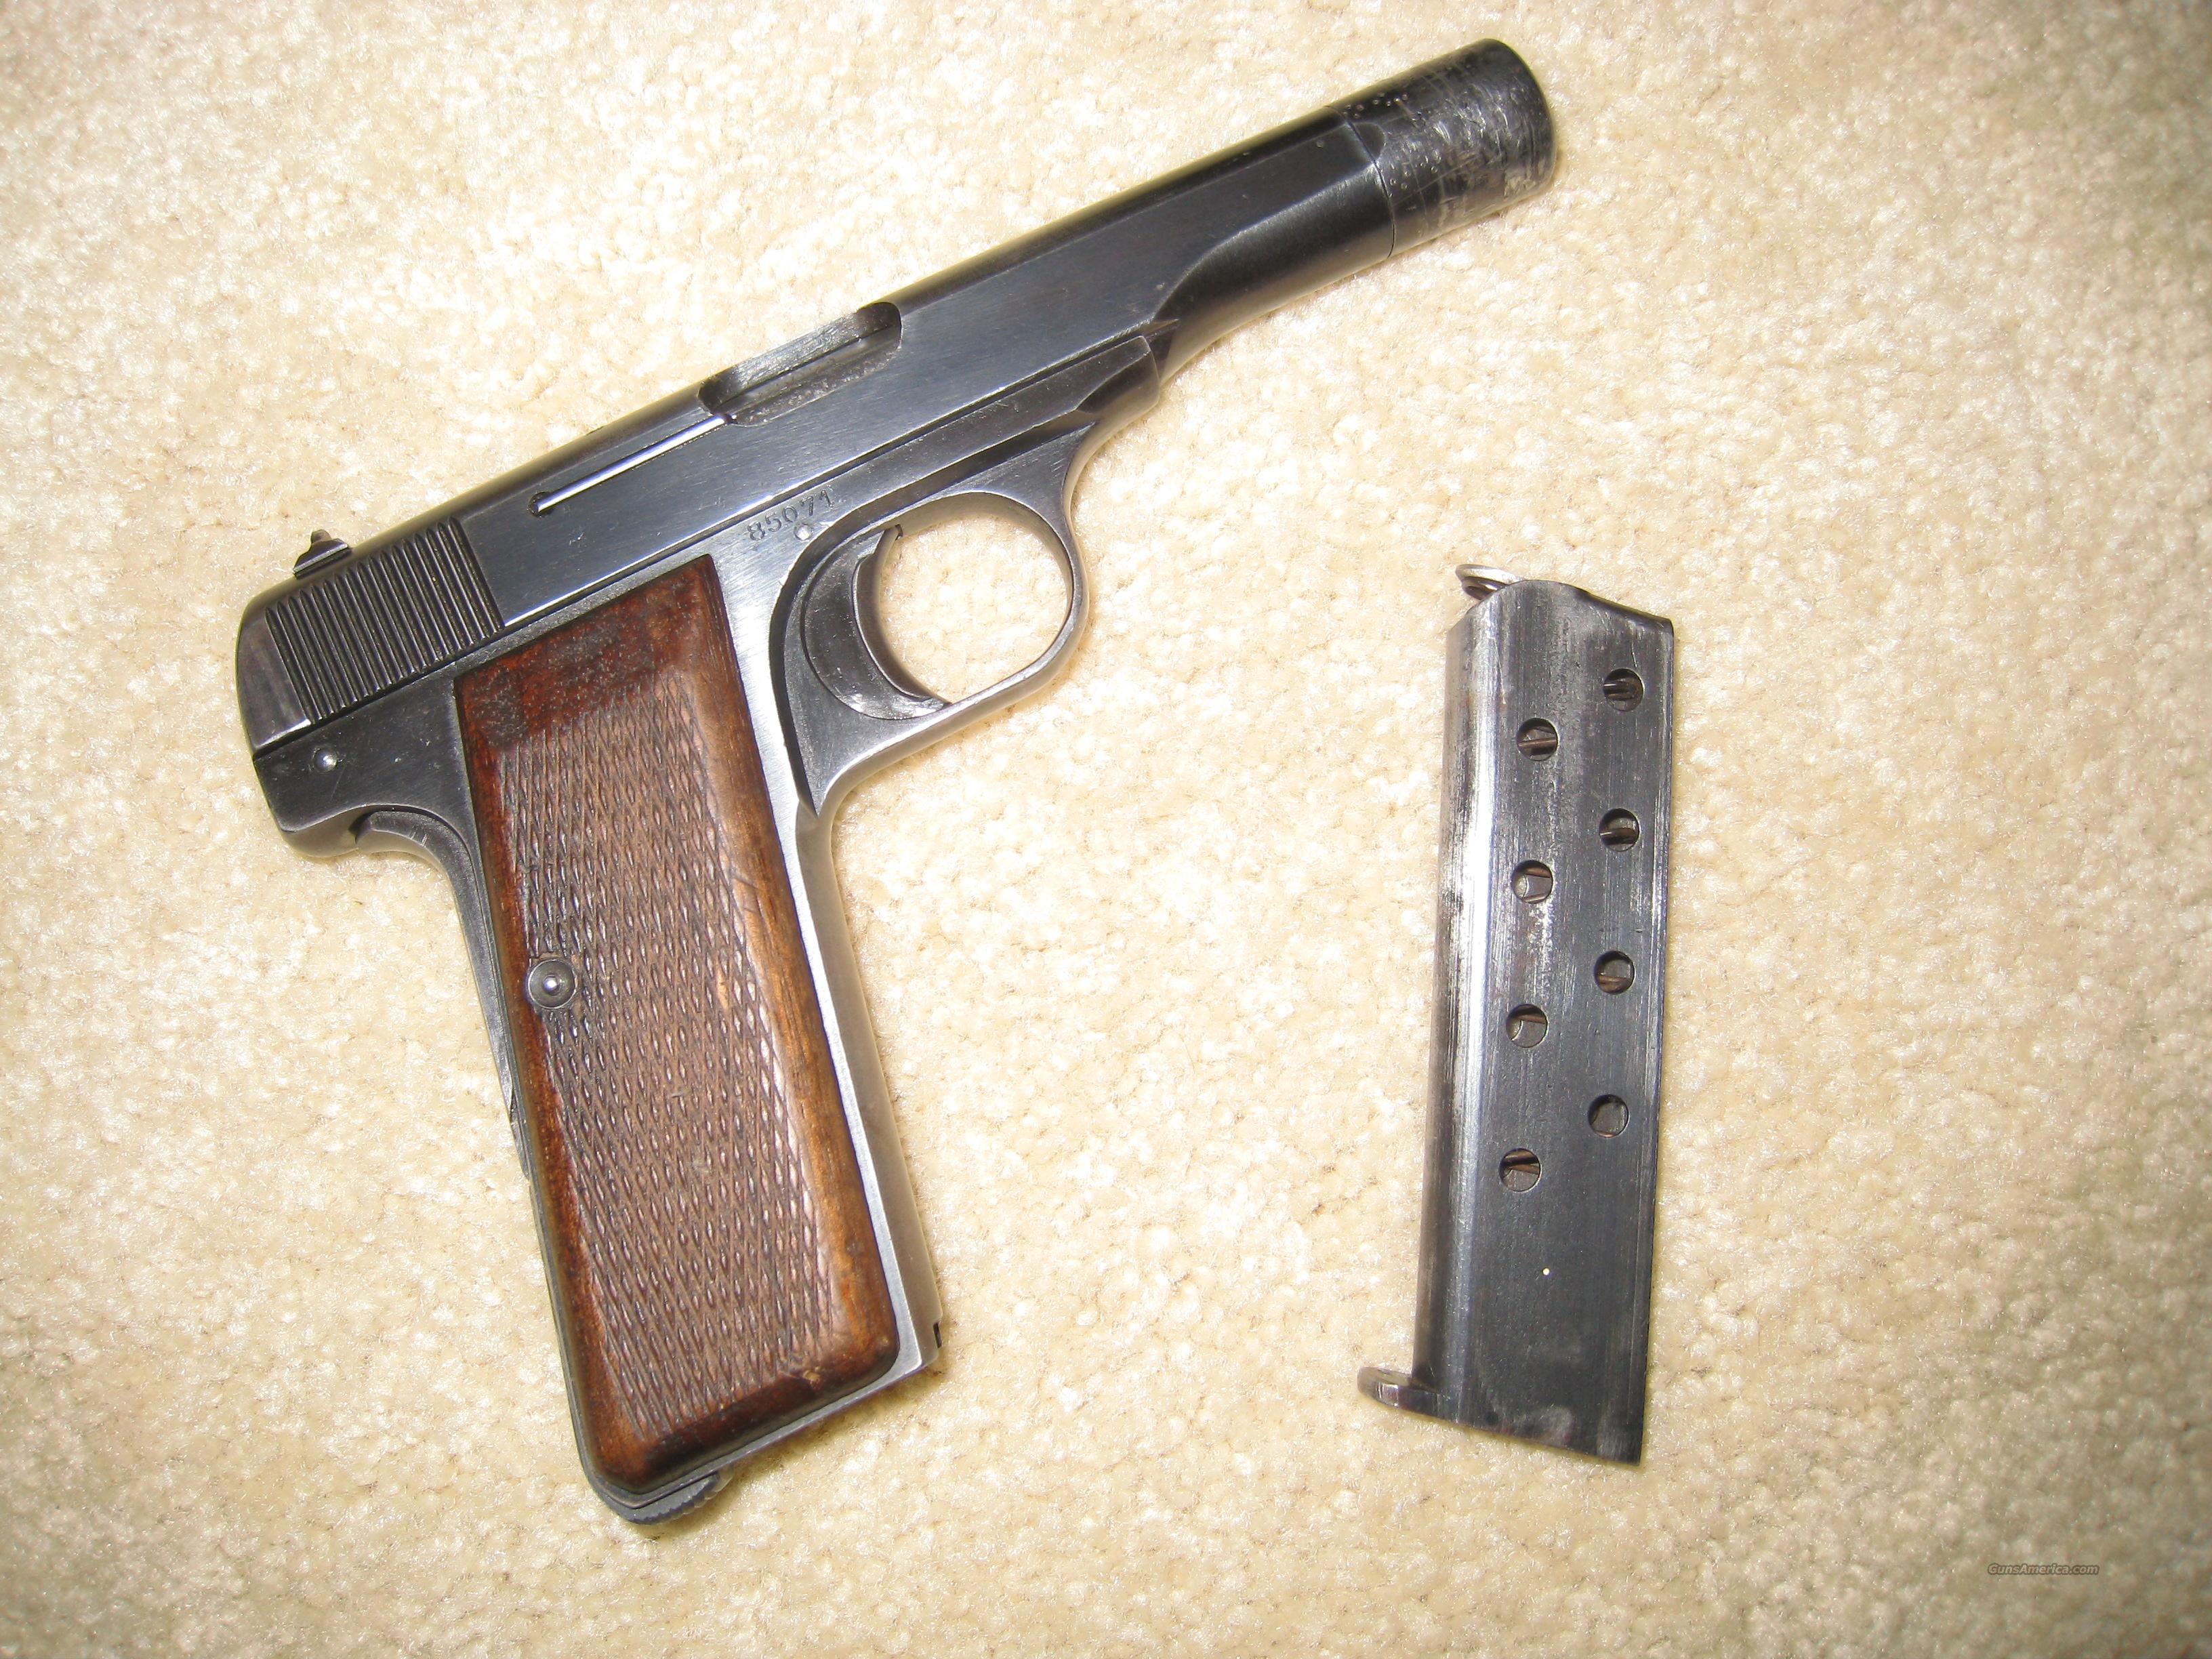 Browning 1922 Pistol WWII .32  Guns > Pistols > Browning Pistols > Other Autos